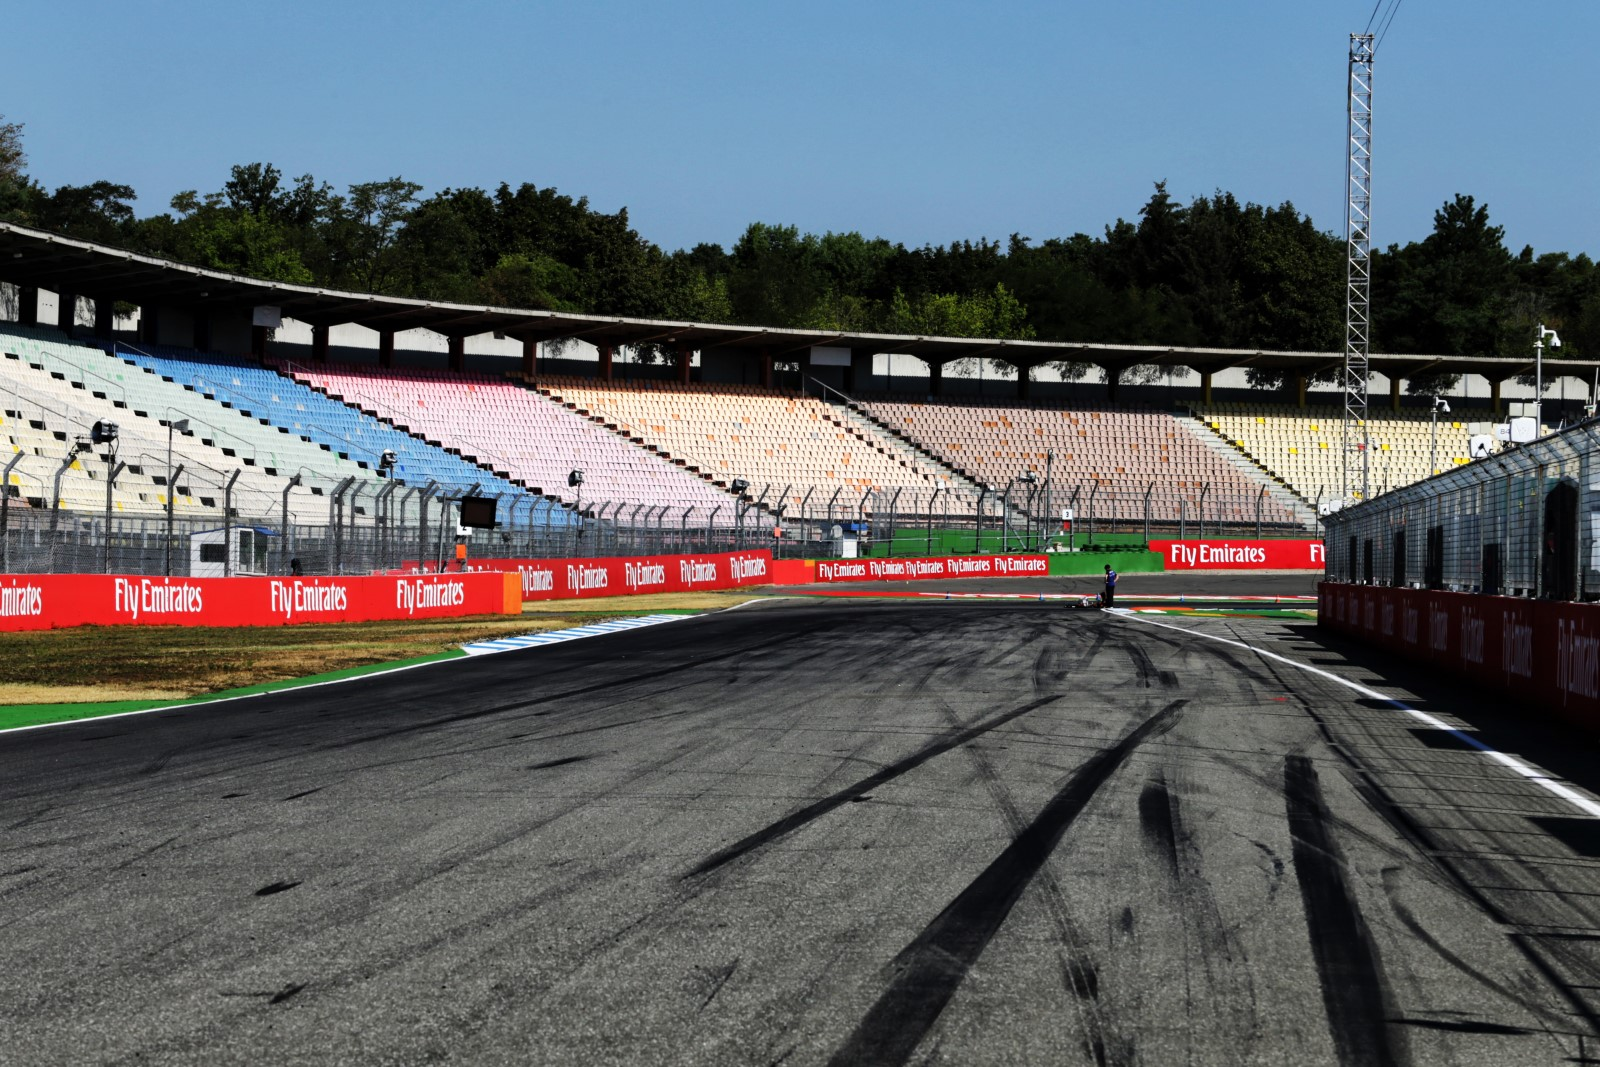 Nurburgring, Portugal and Imola races added to F1 2020 calendar